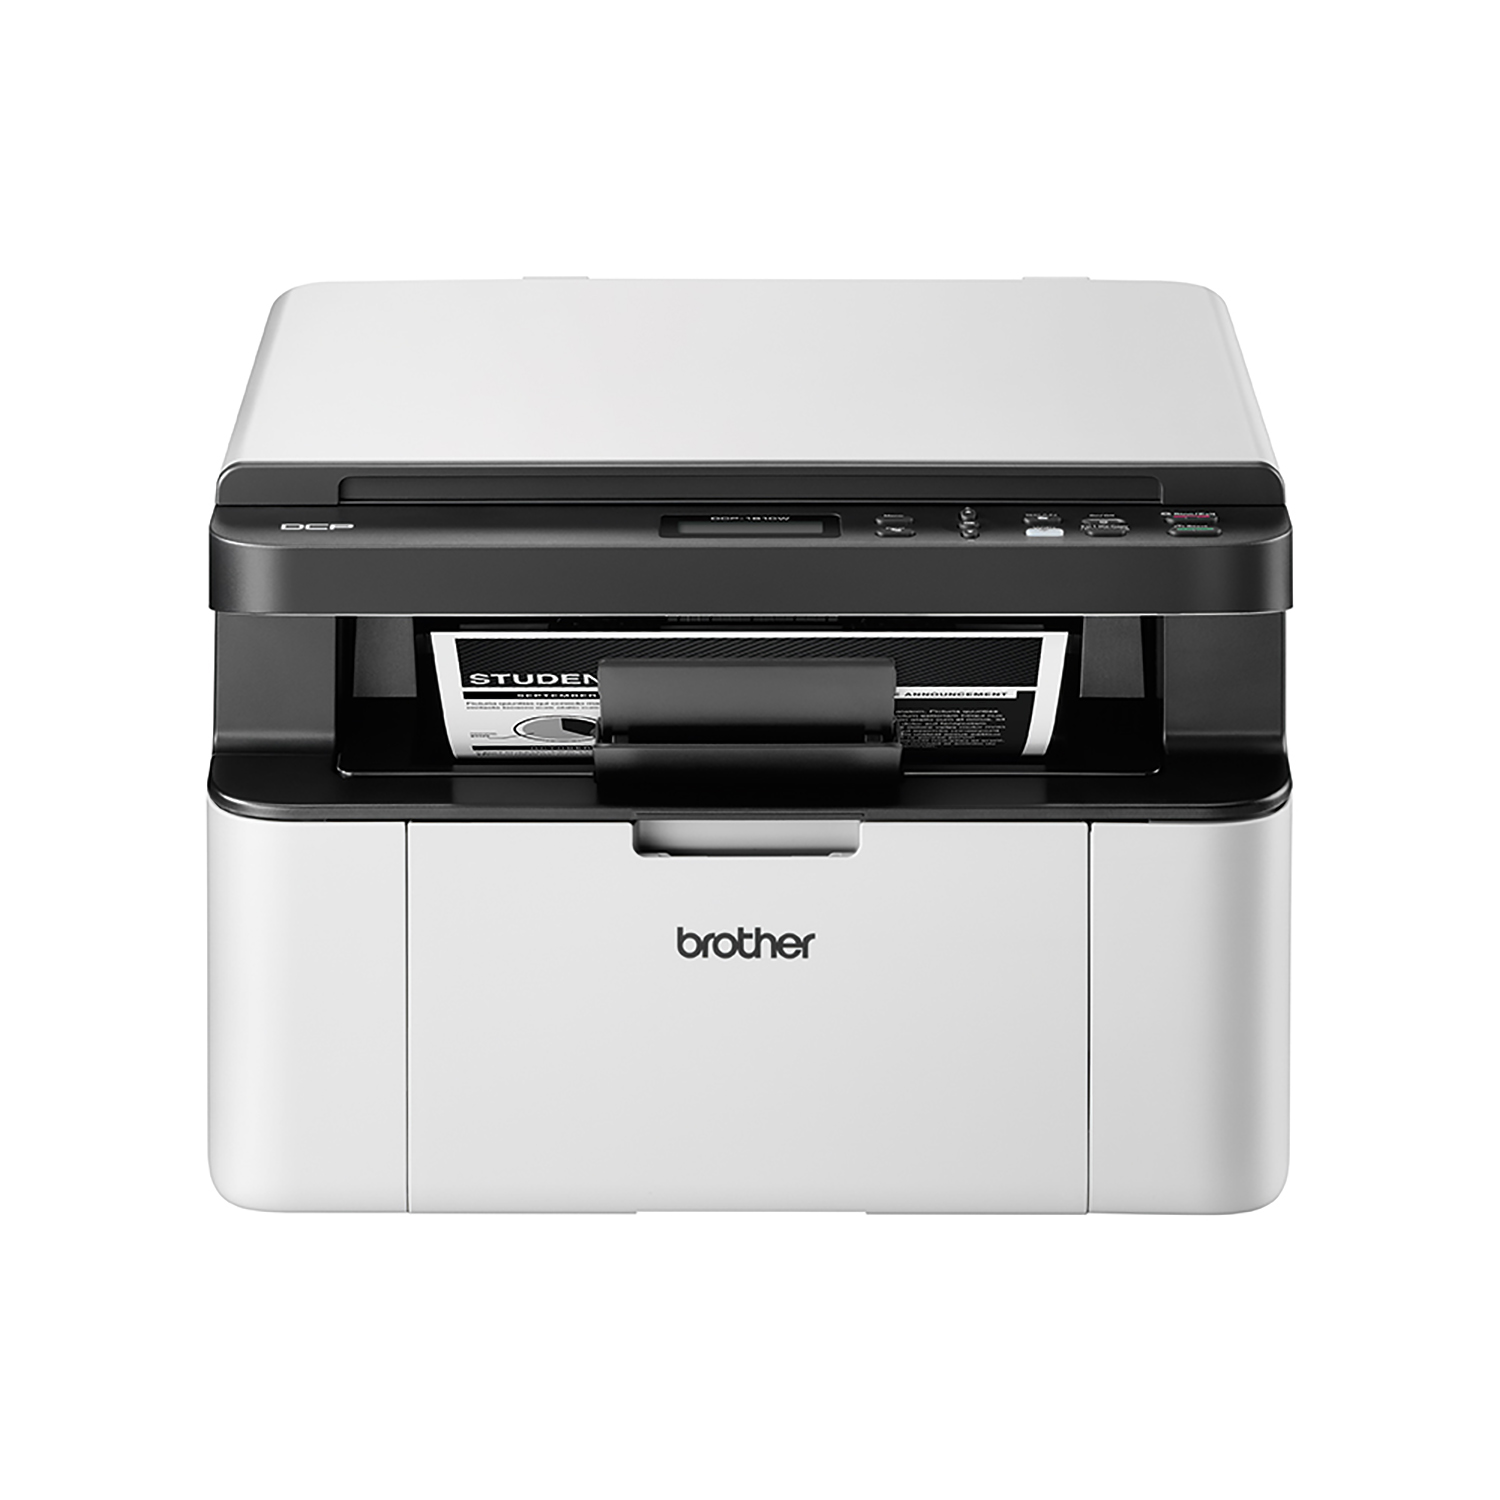 Multifunctional Machines Brother DCP1610W All-in-Box Laser Printer Ref DCP1610WVBZU1